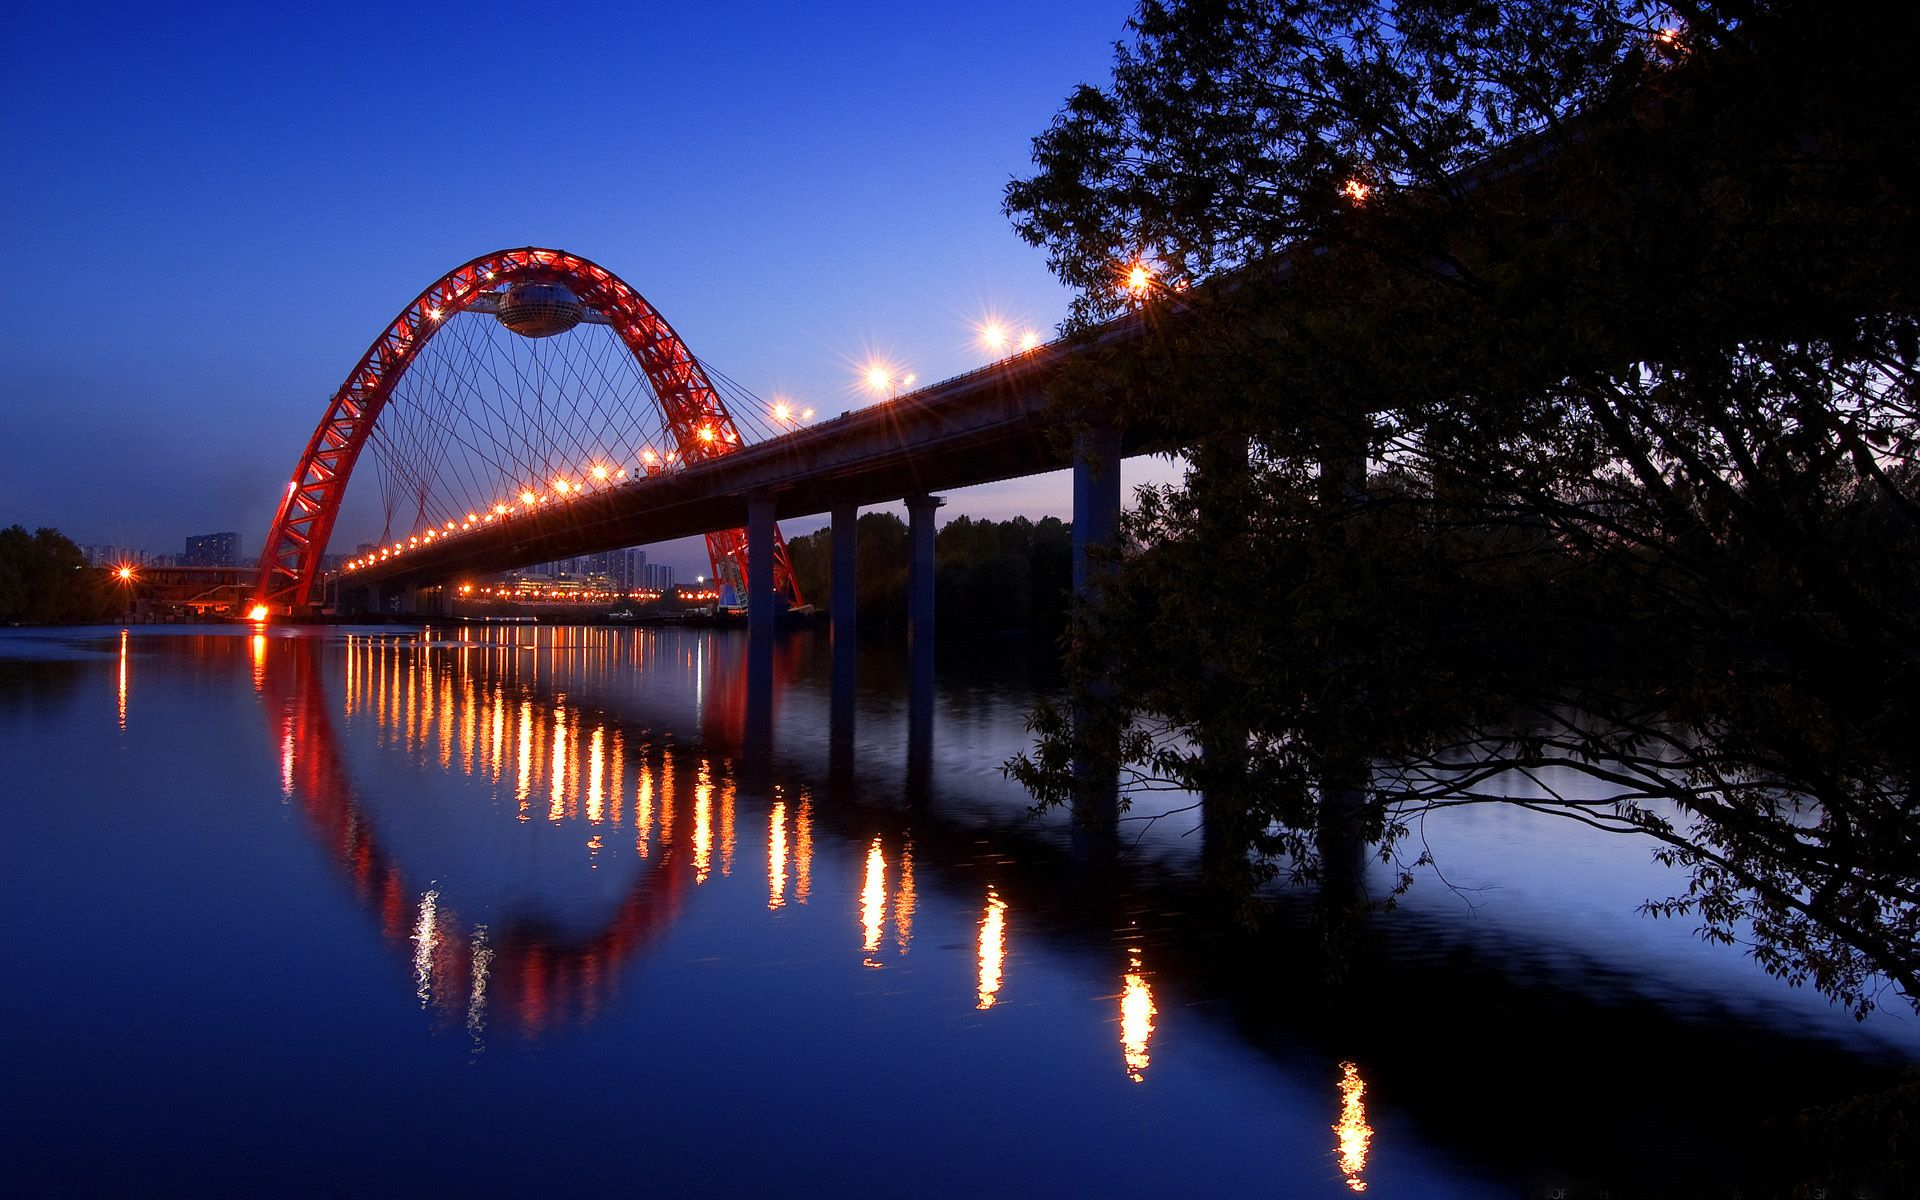 landscape, City, Wallpaper, sky, night, Bridges, light, Lights, road, lighting, Trees, water, river, photo, wallpapers , Pc backgrounds, free photos - HD wallpaper desktop backgrounds